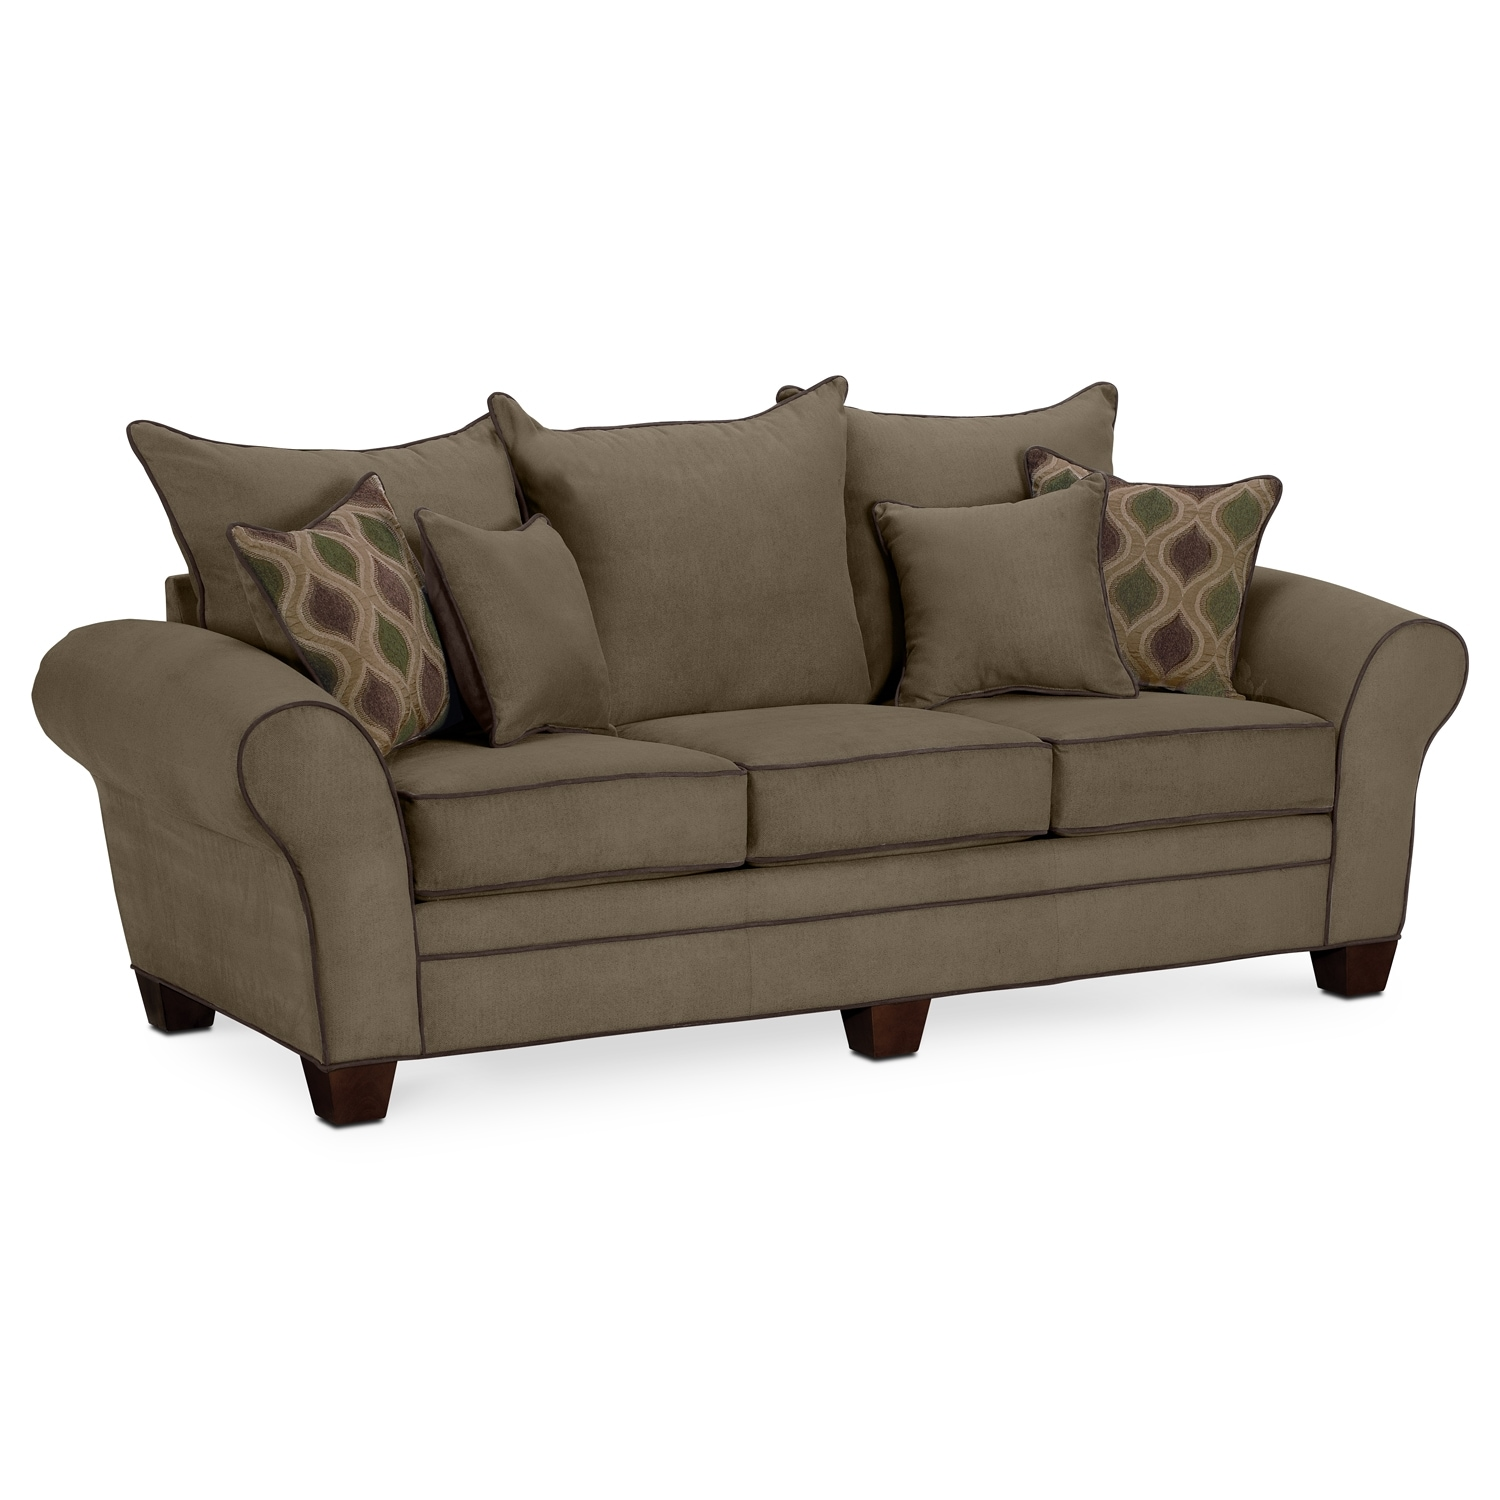 Rendezvous Sofa Value City Furniture